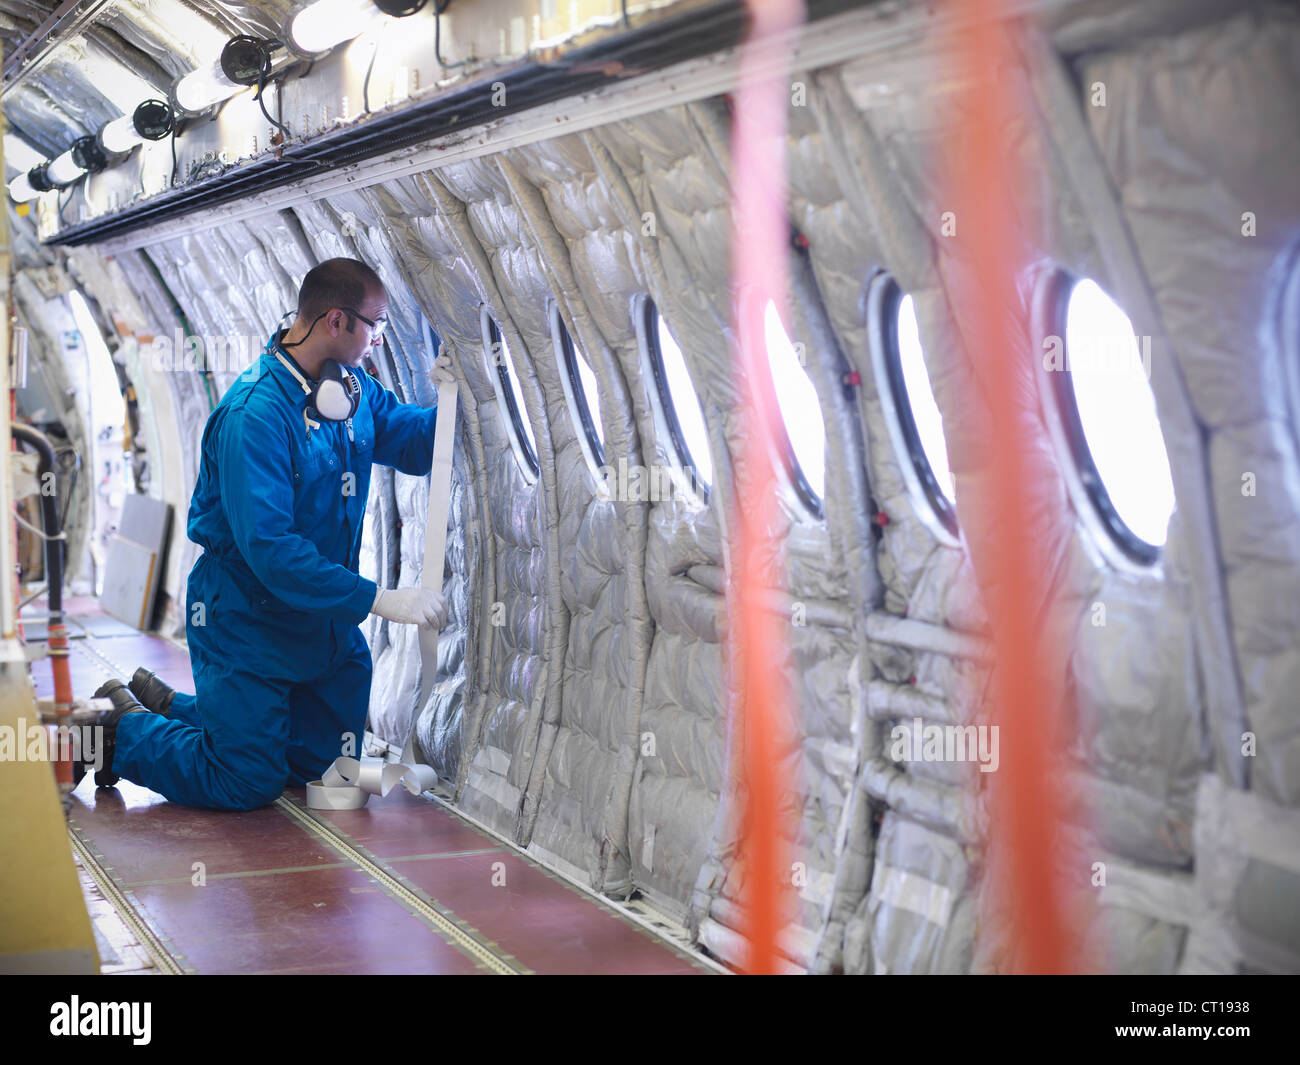 Worker measuring airplane window - Stock Image